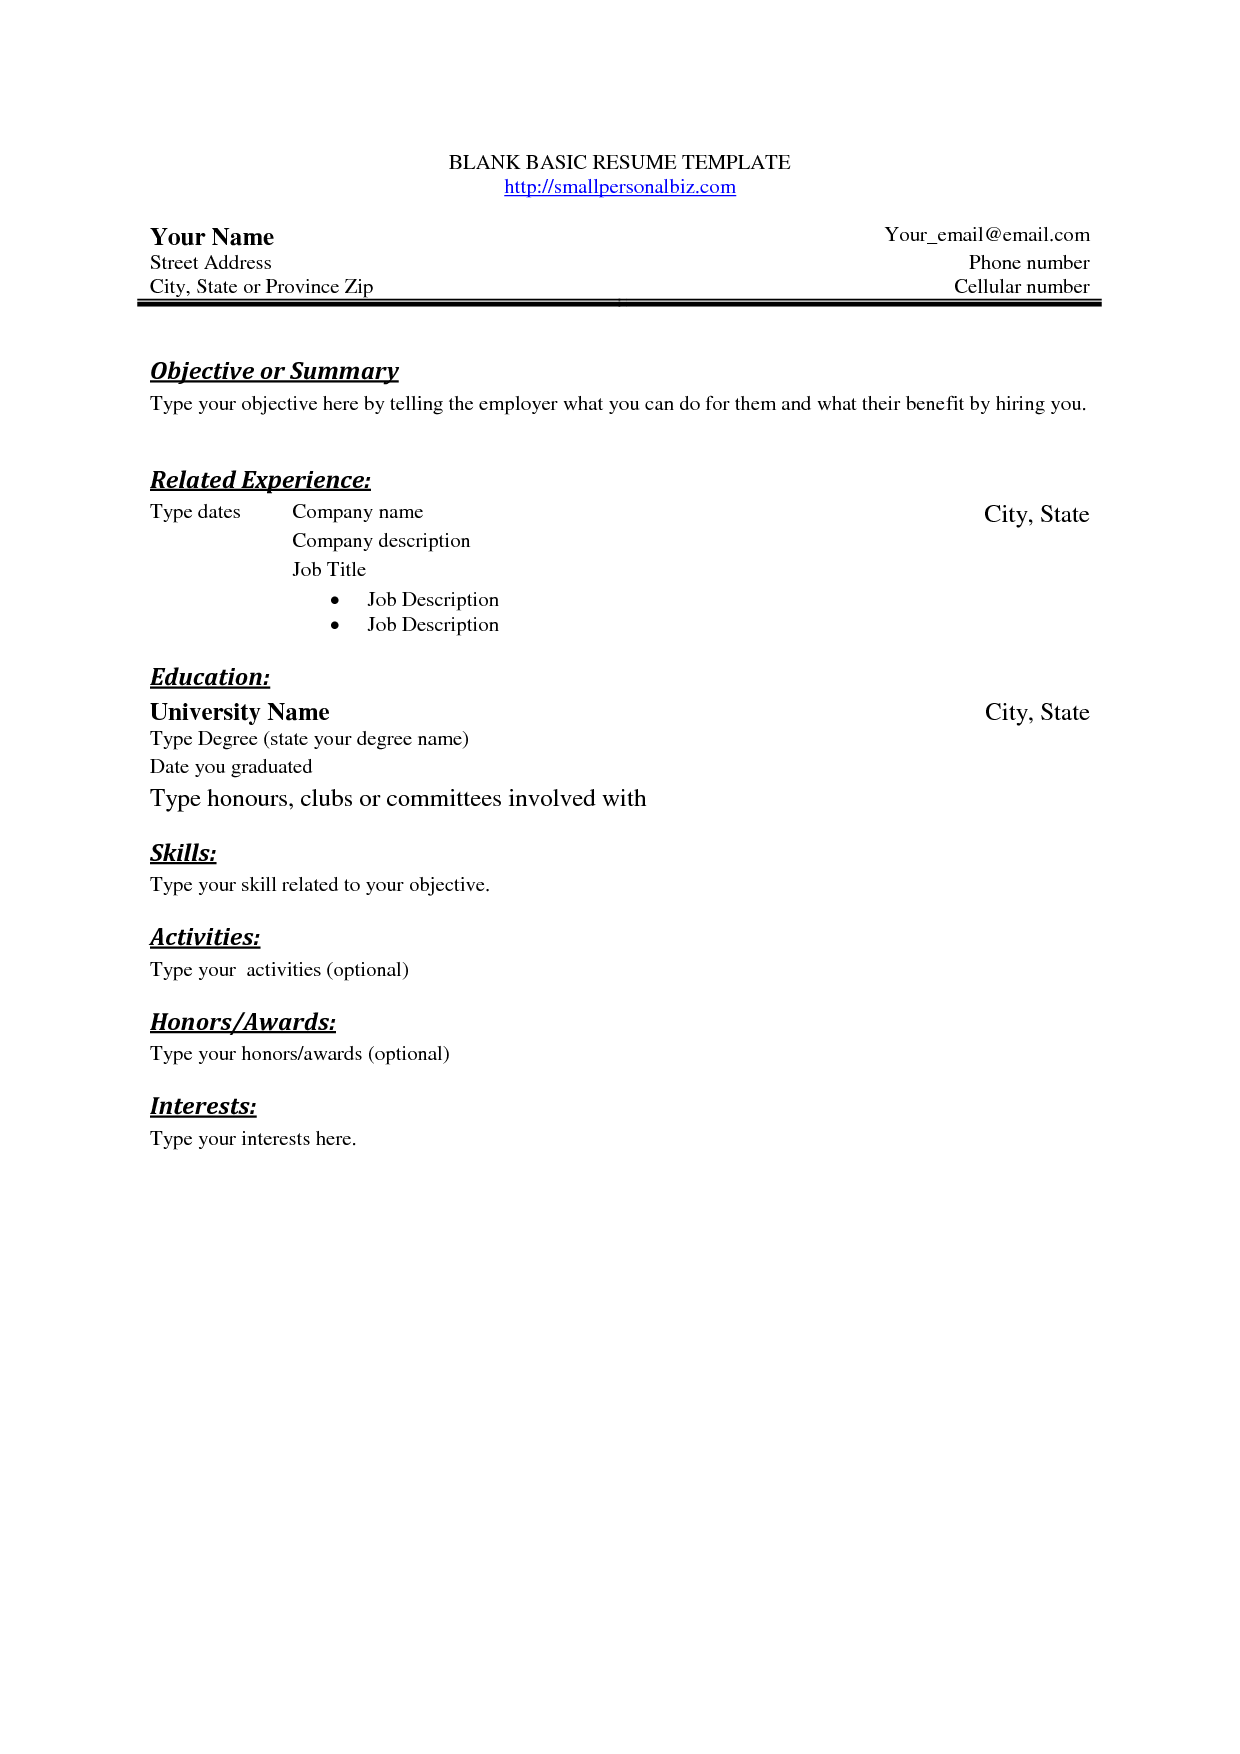 Basic Resume Templates | Free Basic Blank Resume Template Free Basic Sample Resume Beauty